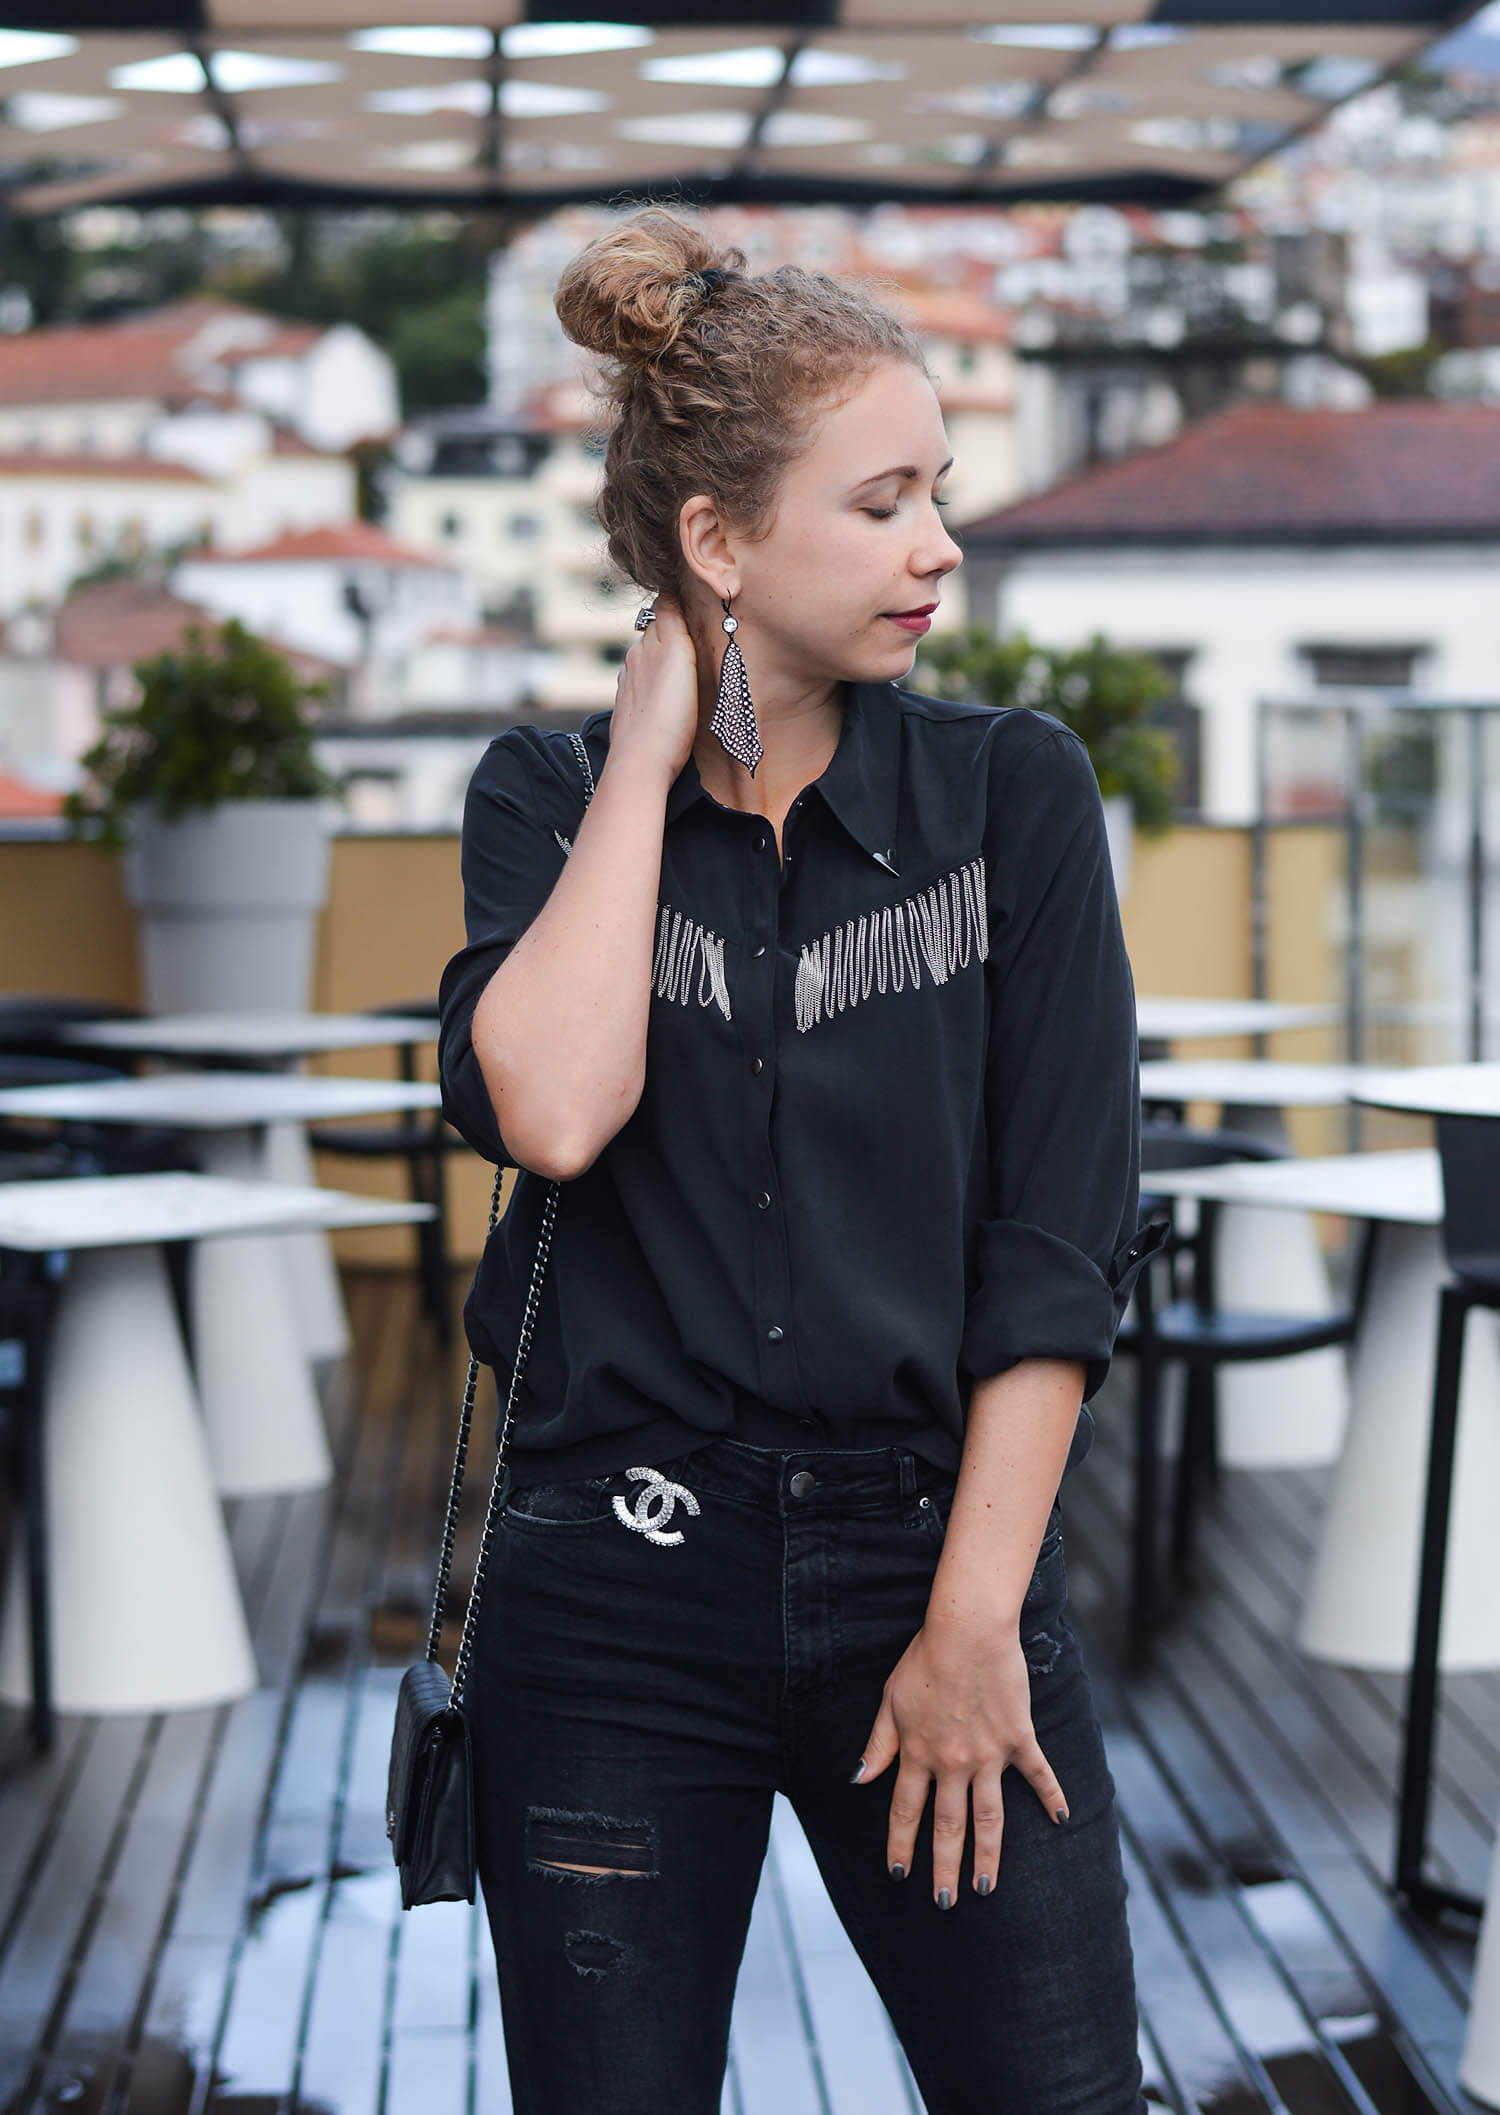 Kationette-Outfit-Zara-Western-Blouse-Ripped-Jeans-Statement-Earrings-and-Chanel-streetstyle-fashionblogger